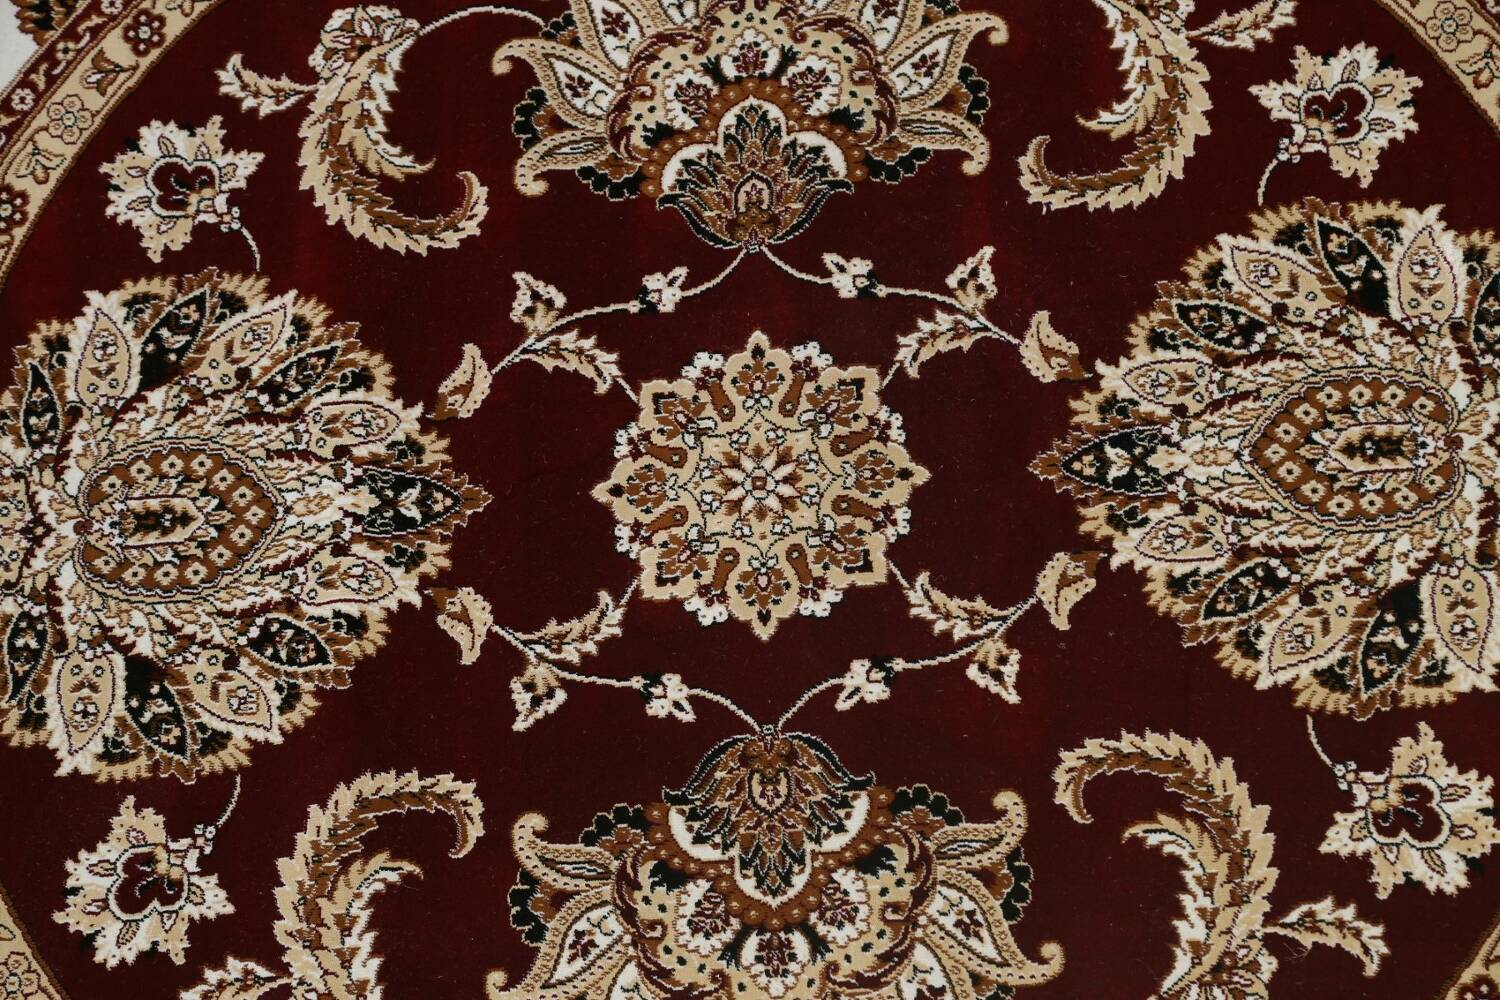 Traditional Floral Tabriz Area Rug image 52